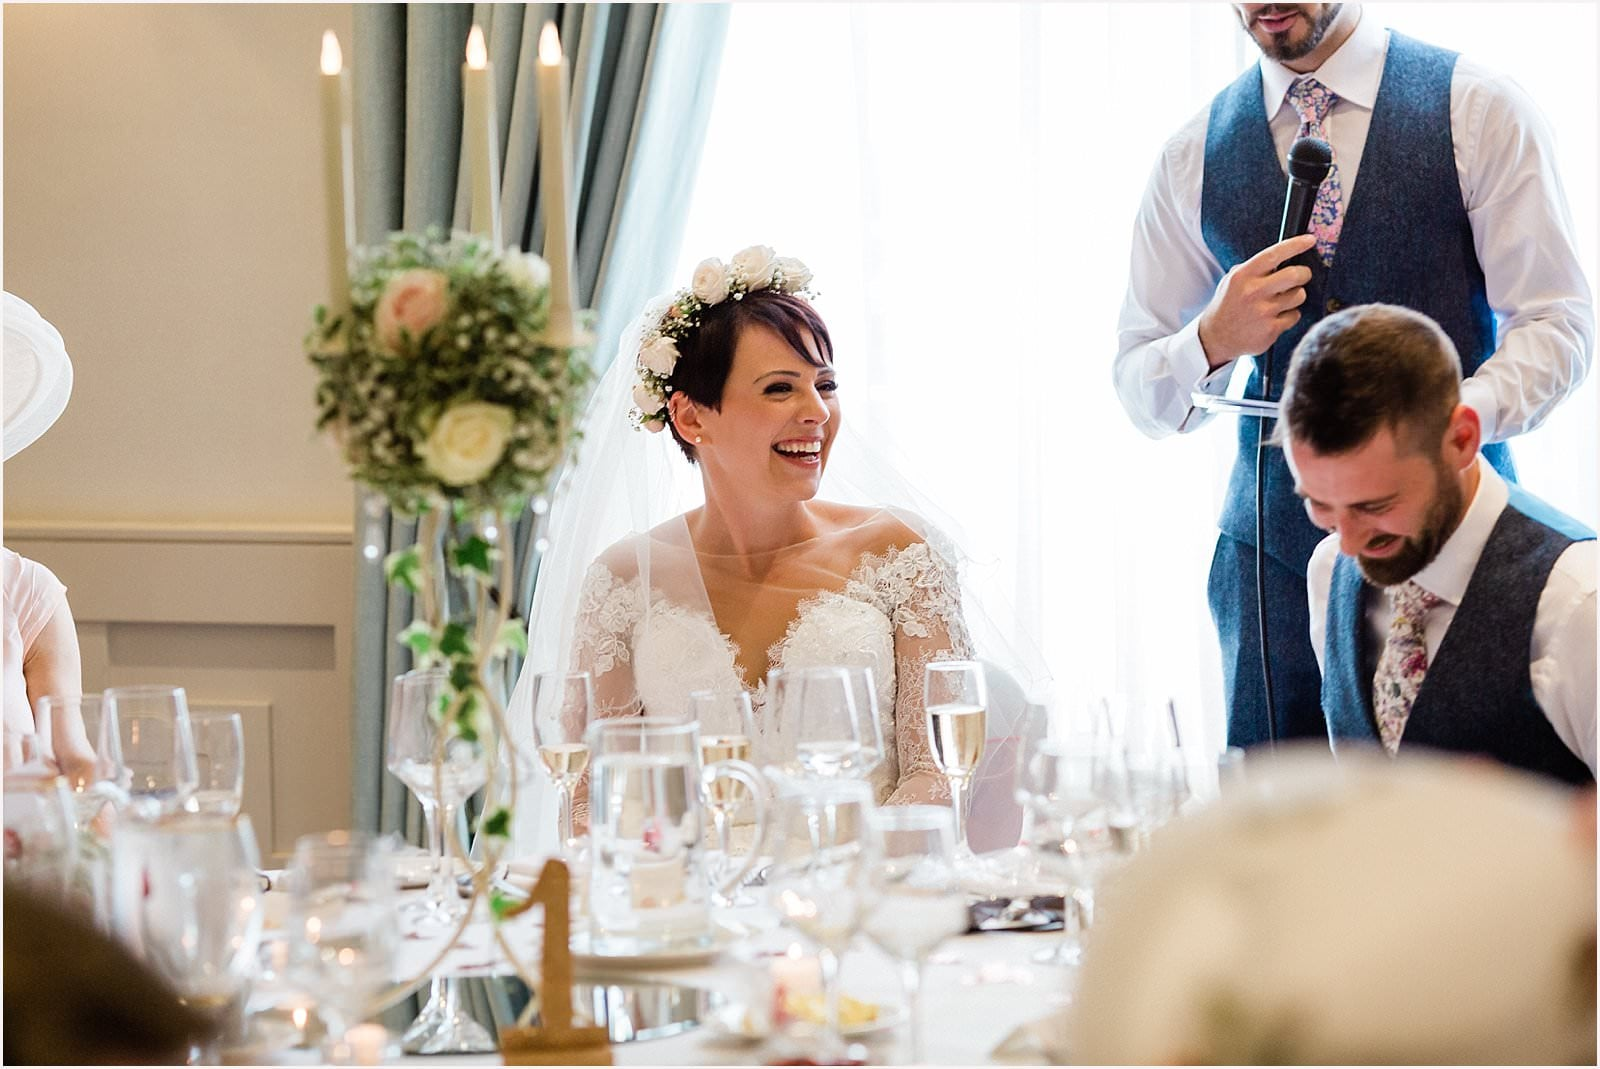 Wotton House Wedding - Justine + Rob's stunning wedding 40